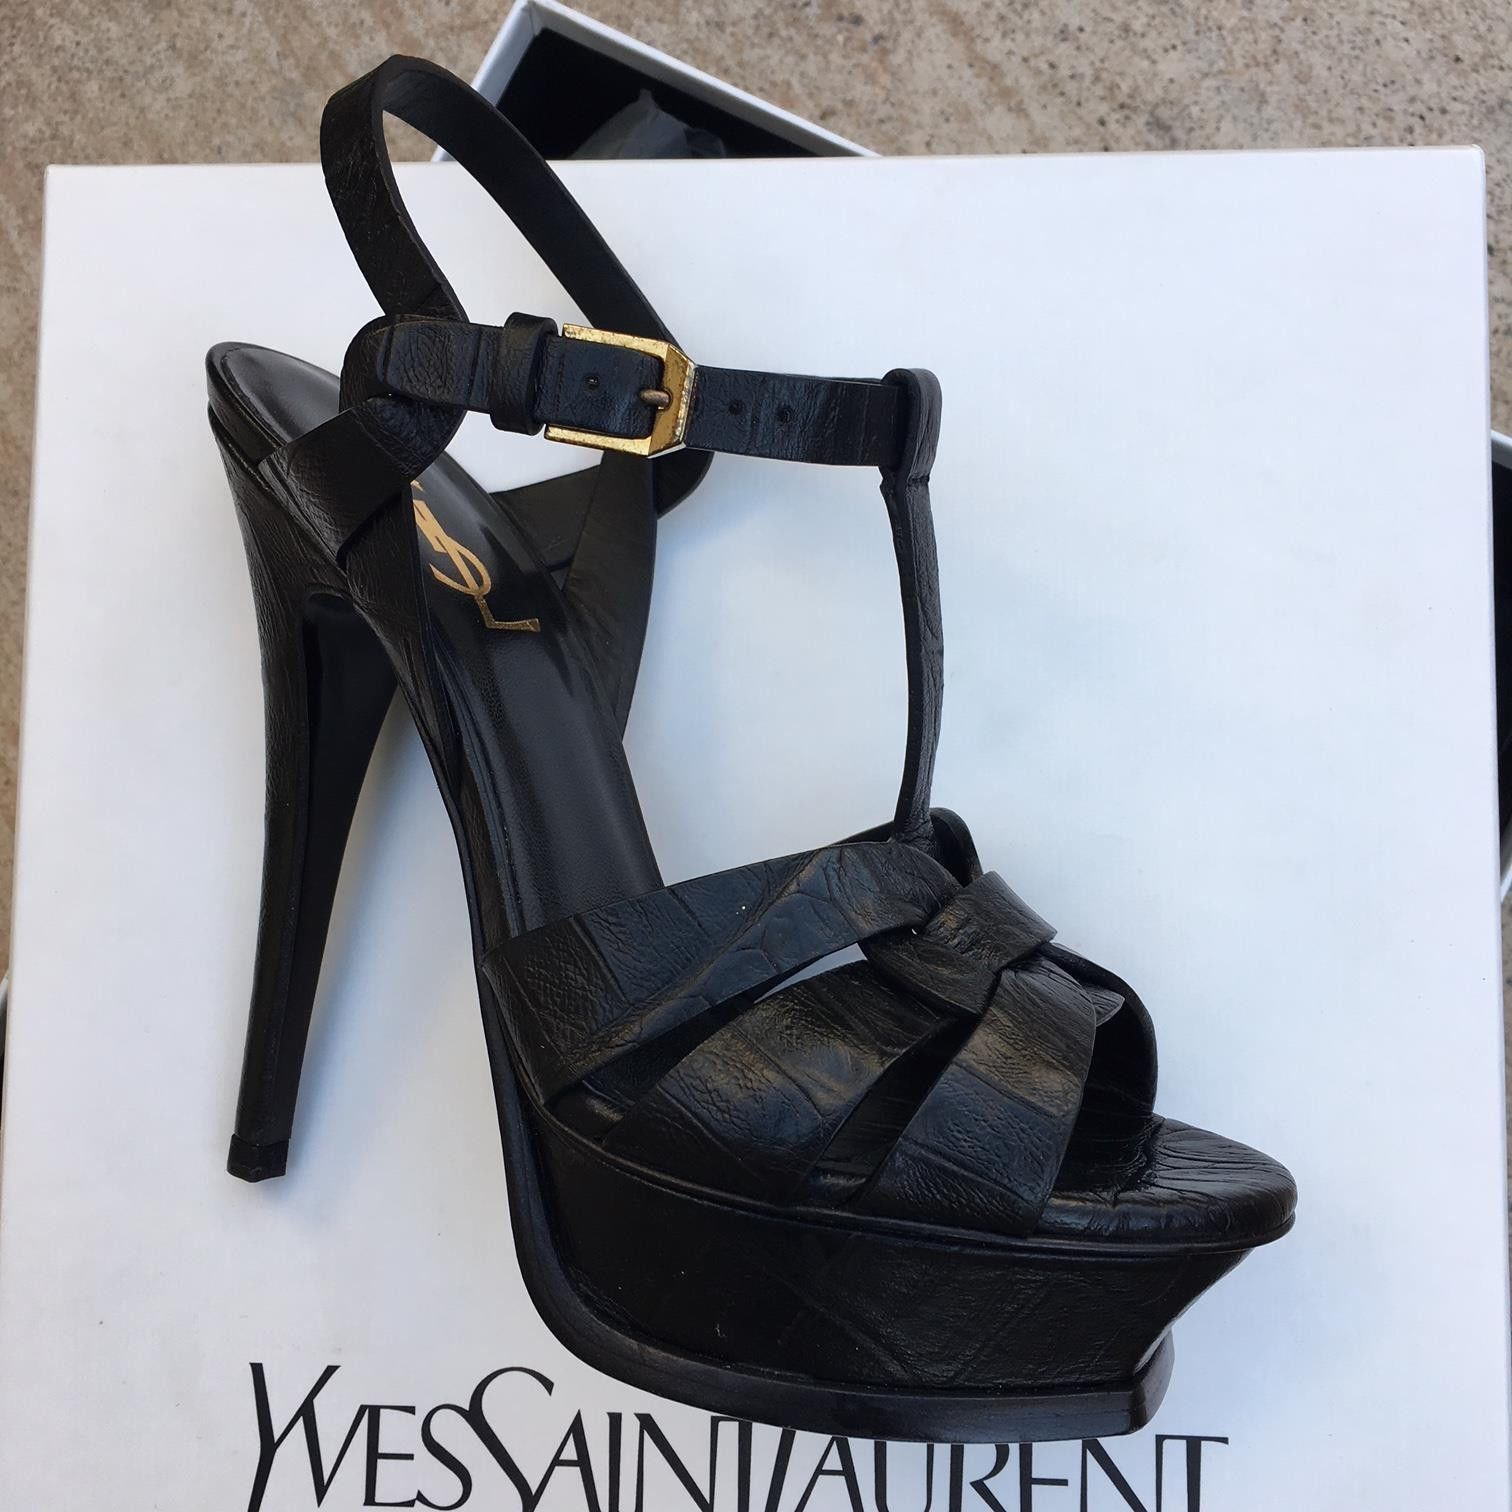 362a94223 Saint Laurent YSL Black Platform Sandals Heels Size 5.5 euro 35.5 NEW IN BOX